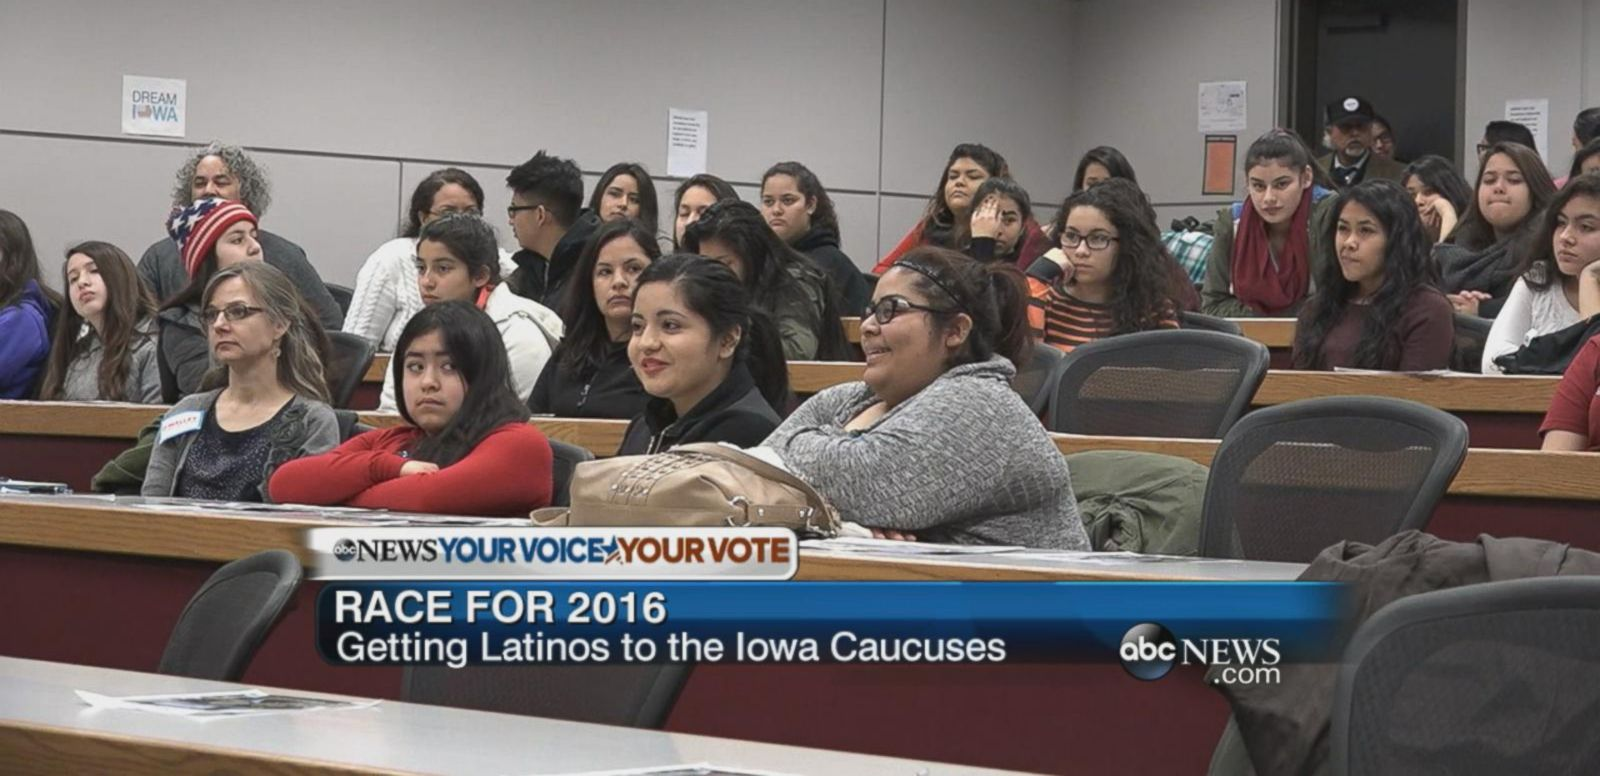 VIDEO: Iowa Activists Encourages Latinos to Vote